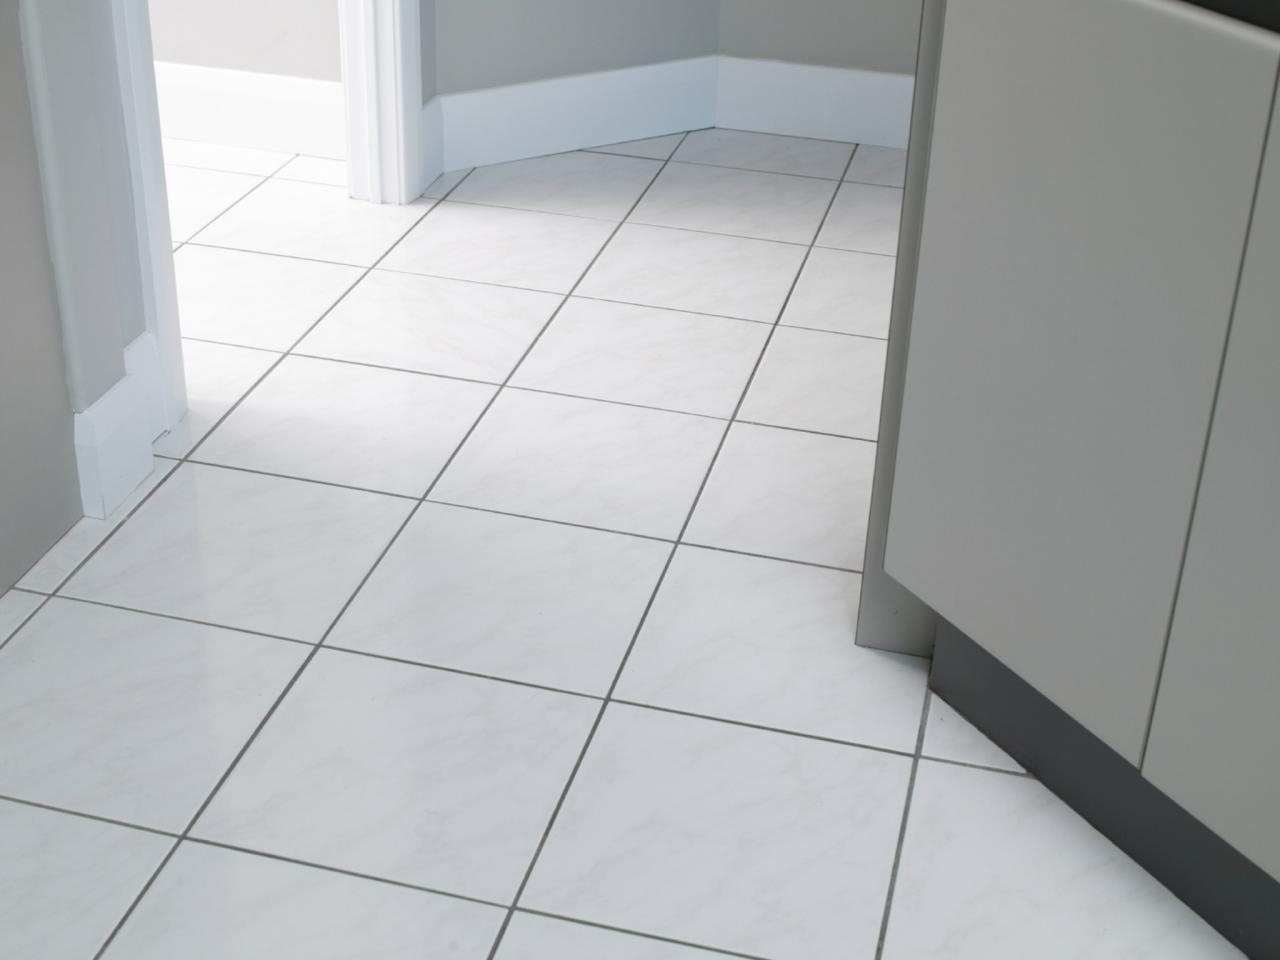 Ceramic tile sealing substrate solutions flooring protection concrete floor cleaning sunrise dailygadgetfo Images